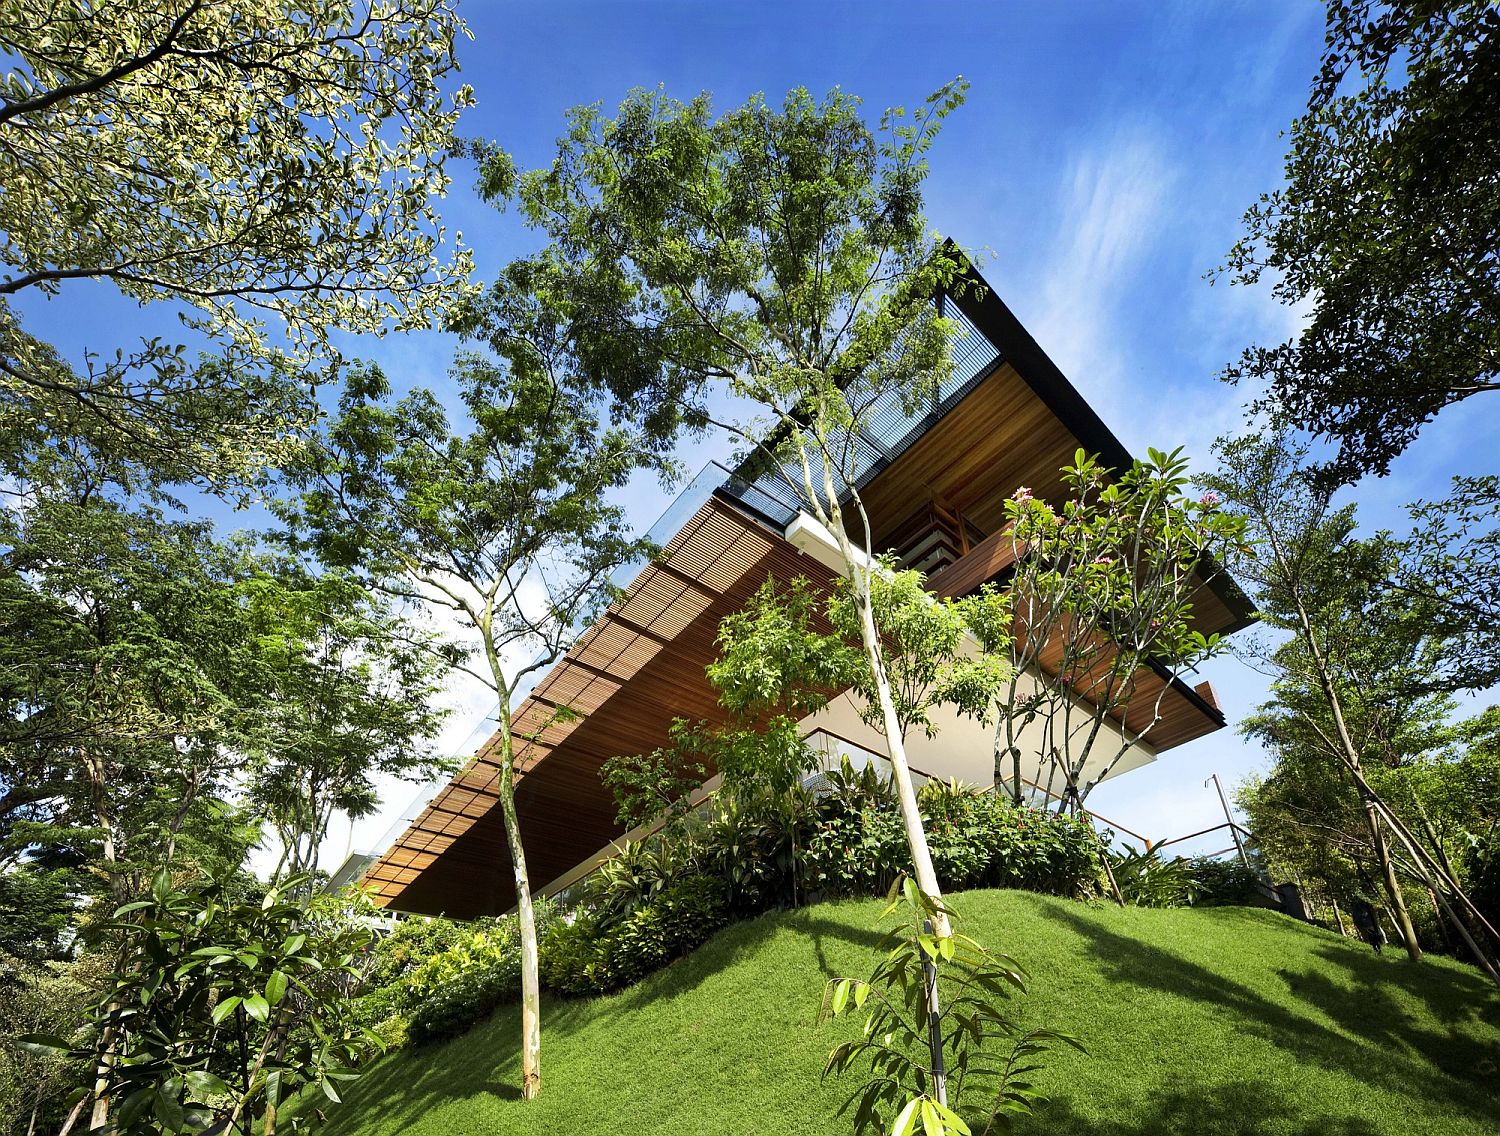 Botanica House in SIngapore is all about going green